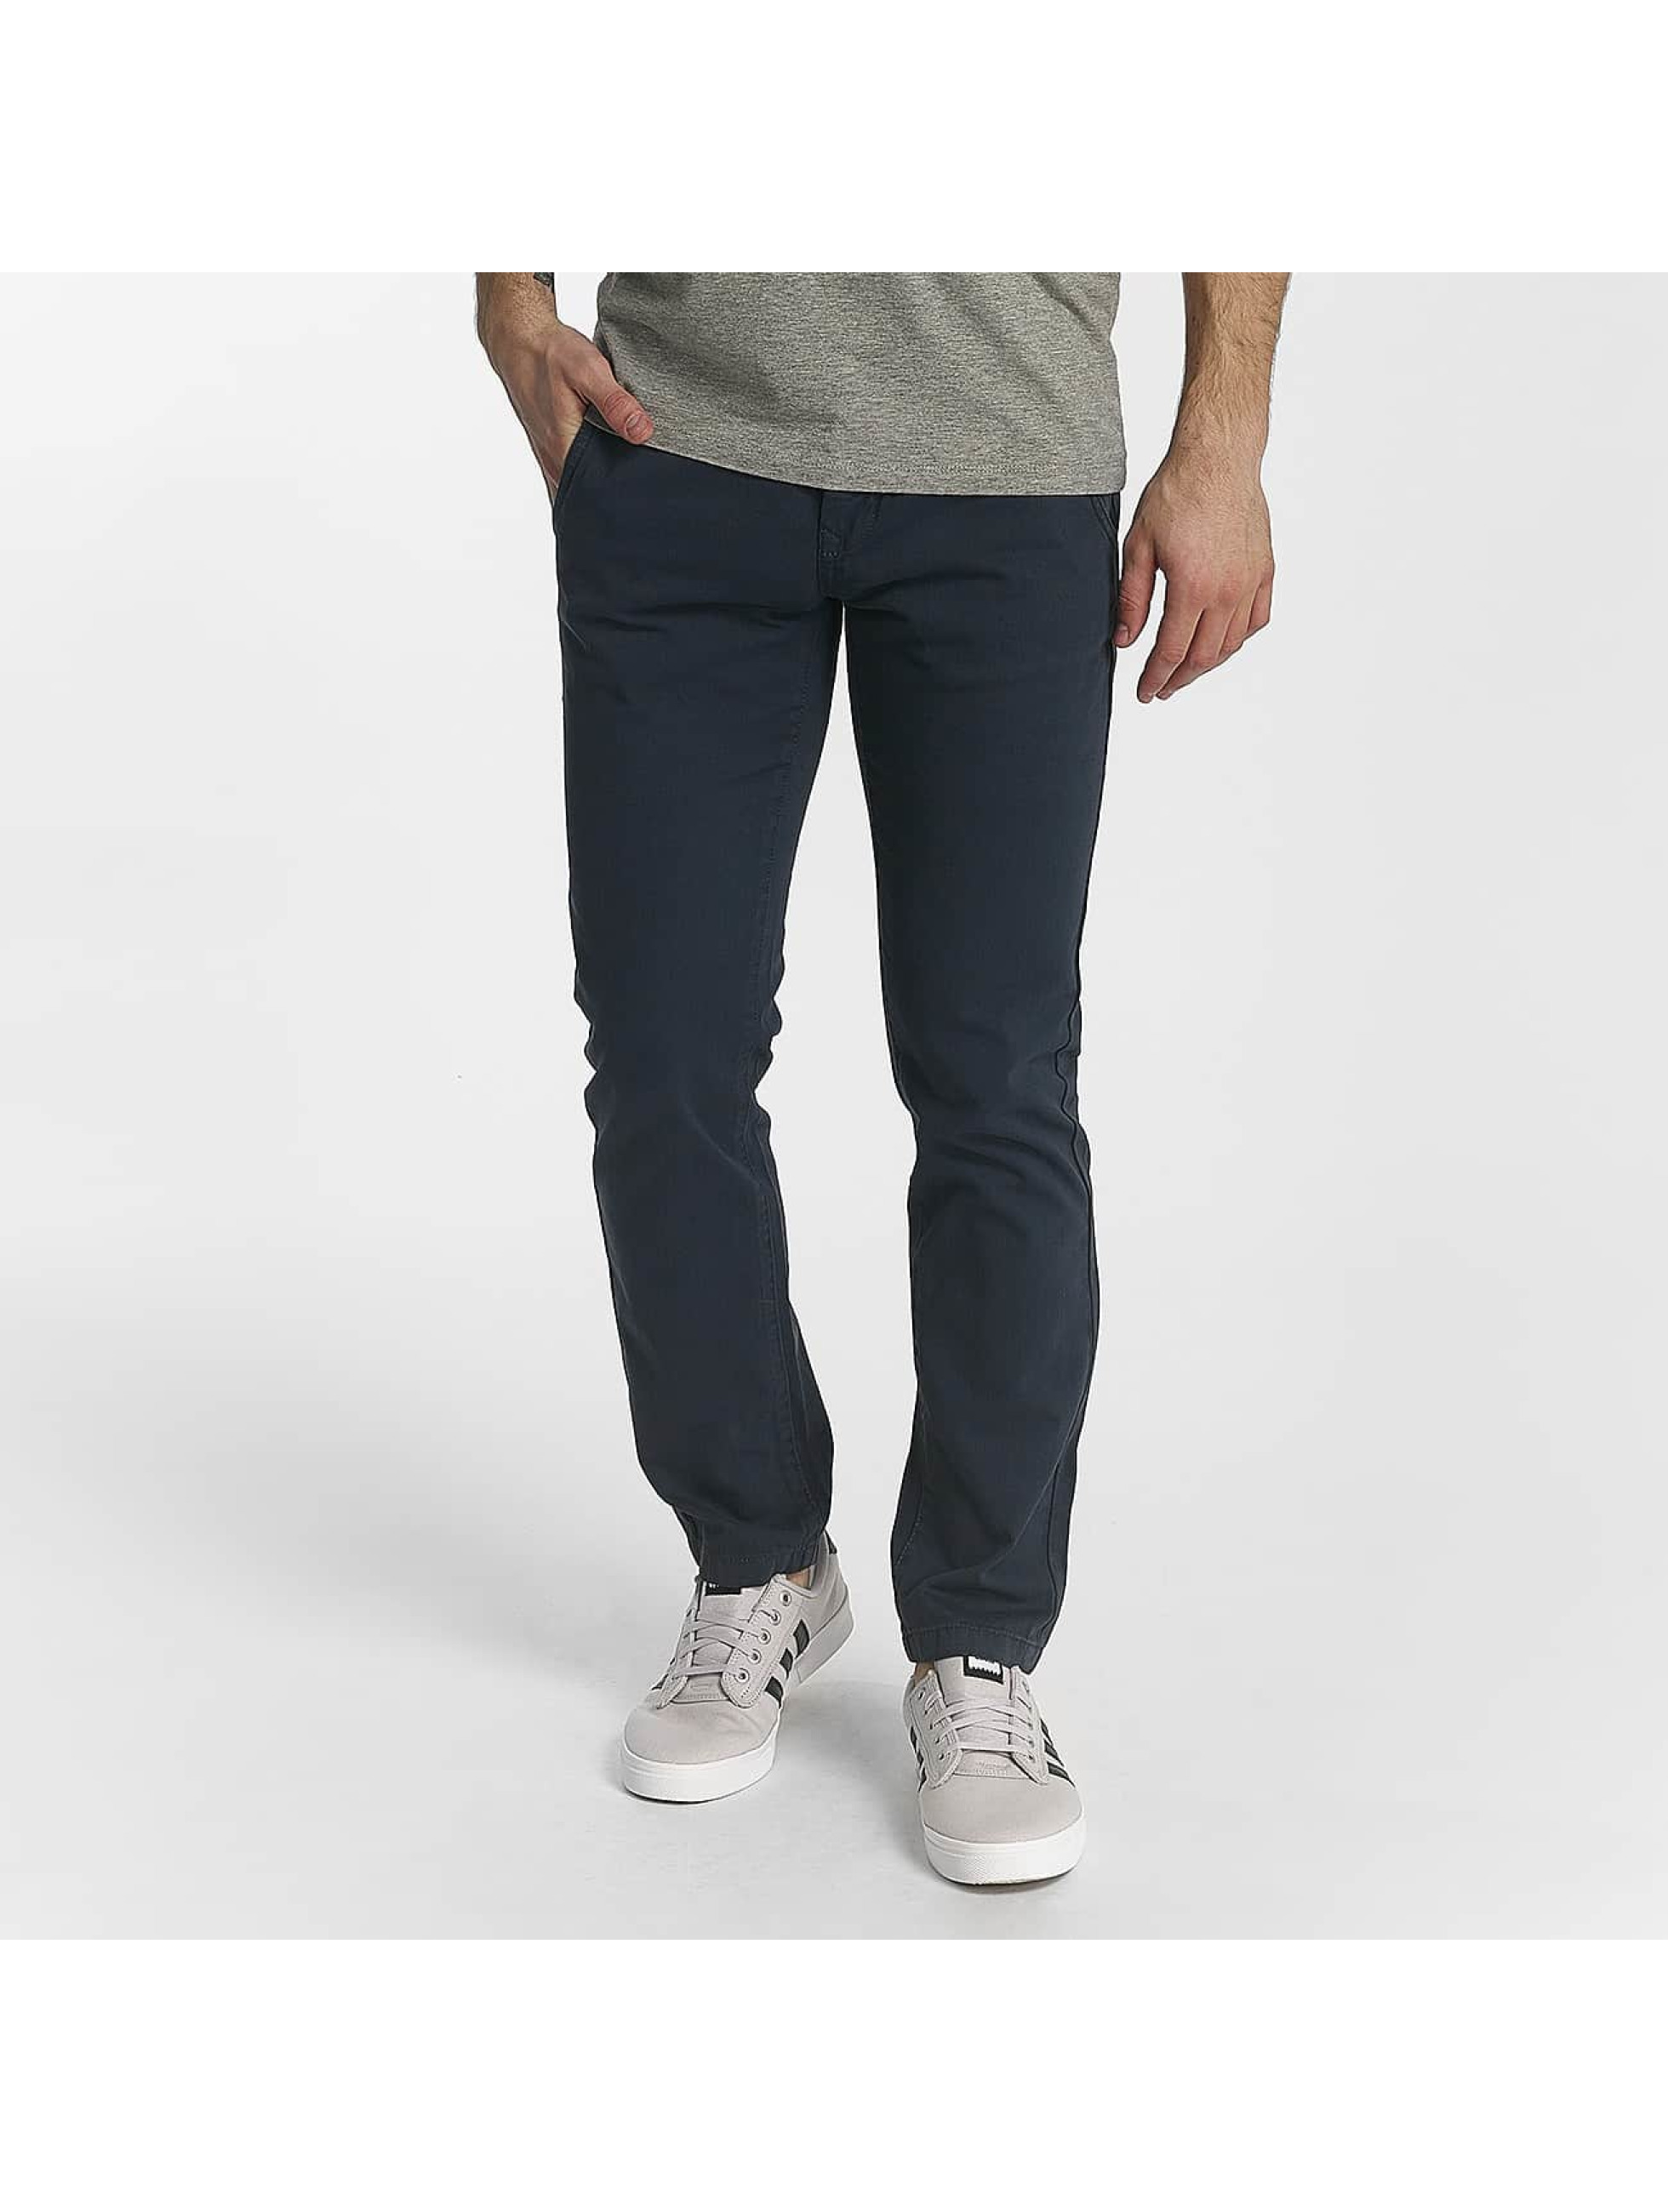 SHINE Original Chino pants Abdul blue